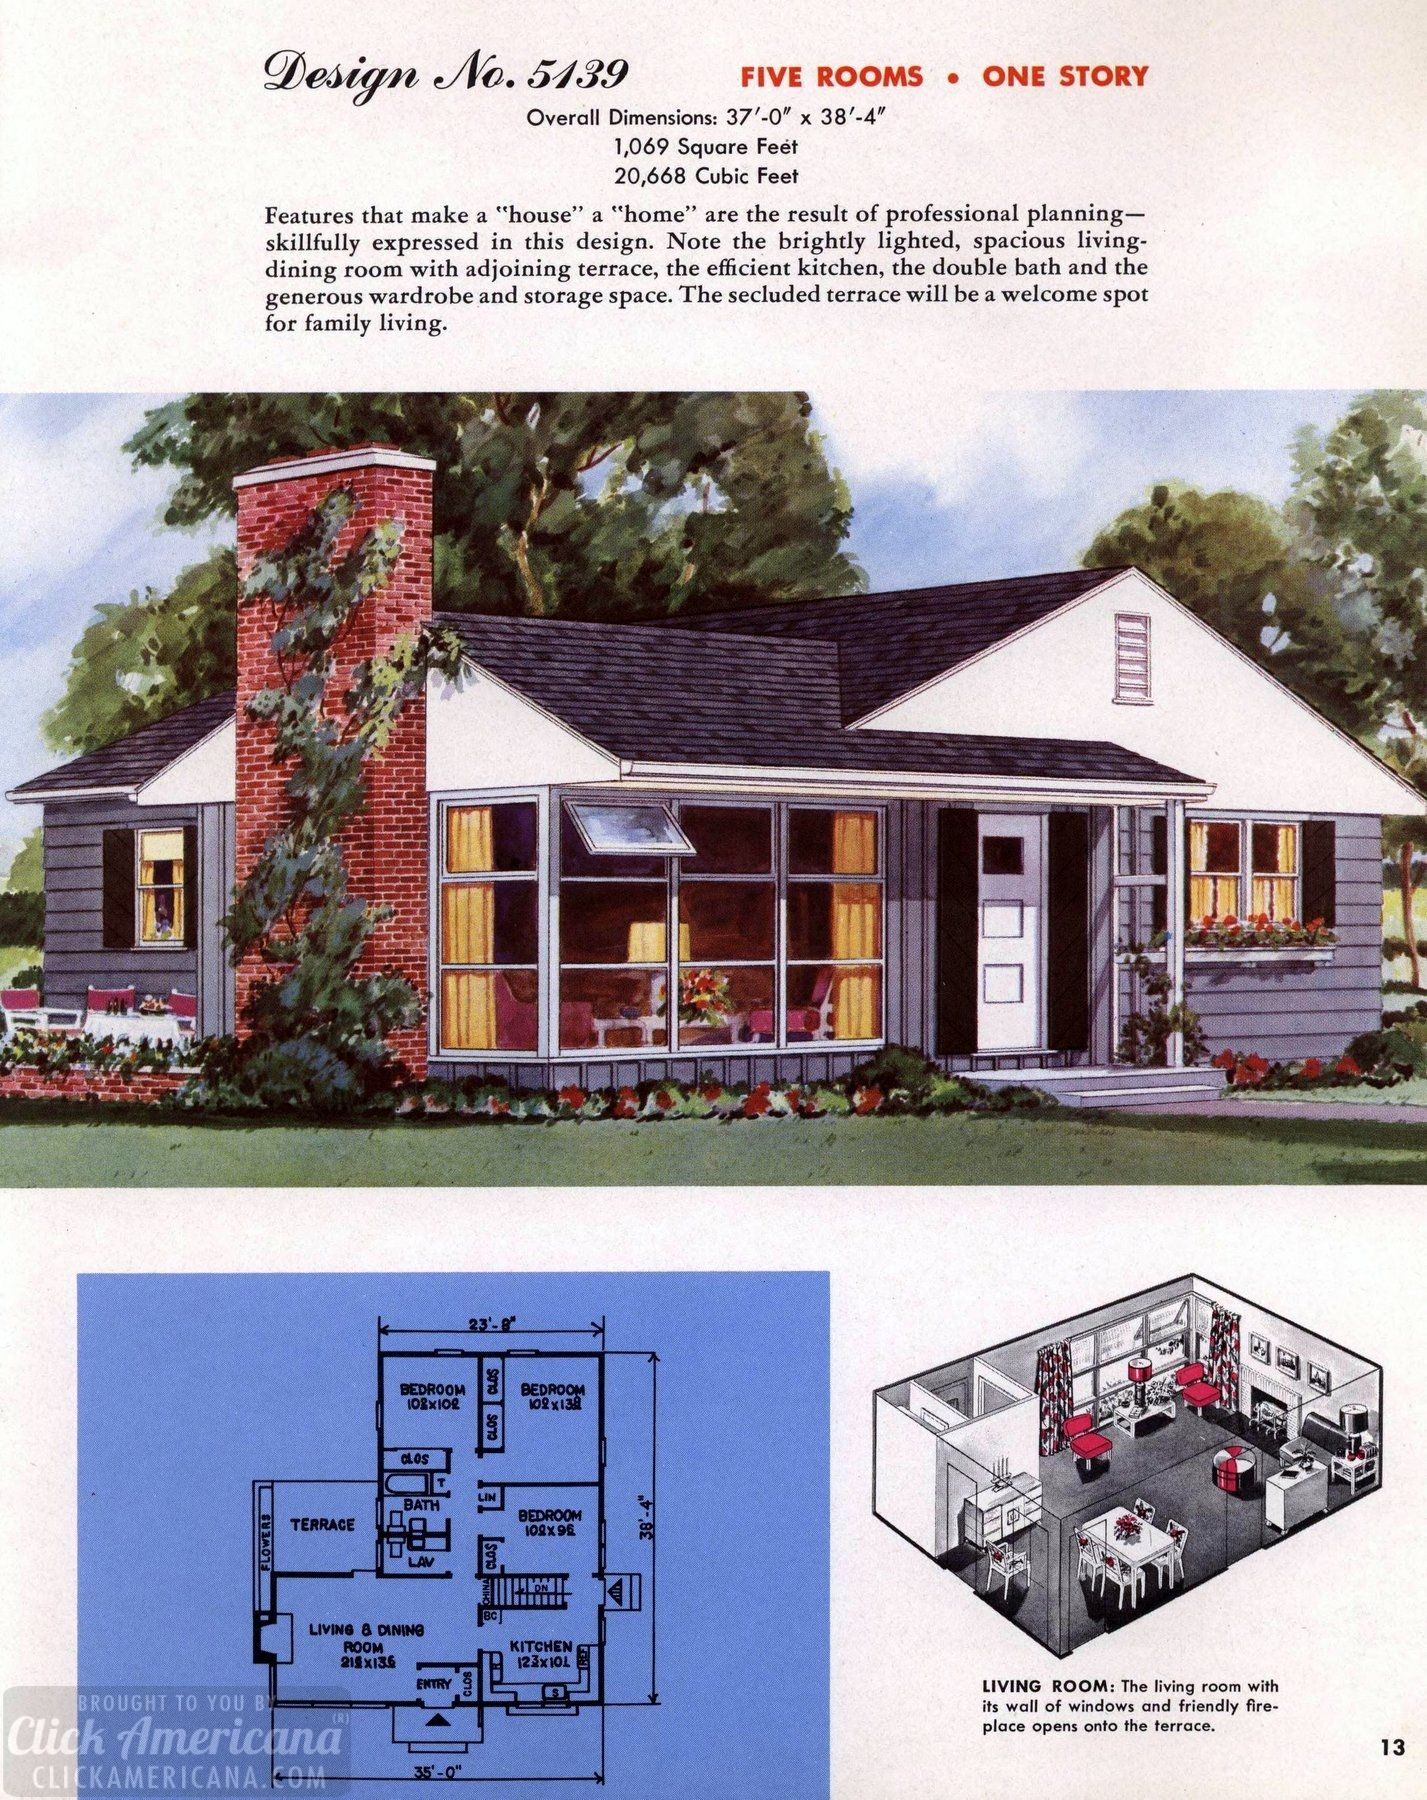 See 110 vintage 50s house plans used to build millions of mid century homes that we still live in today 1950s 50s fifties houses vintagehome